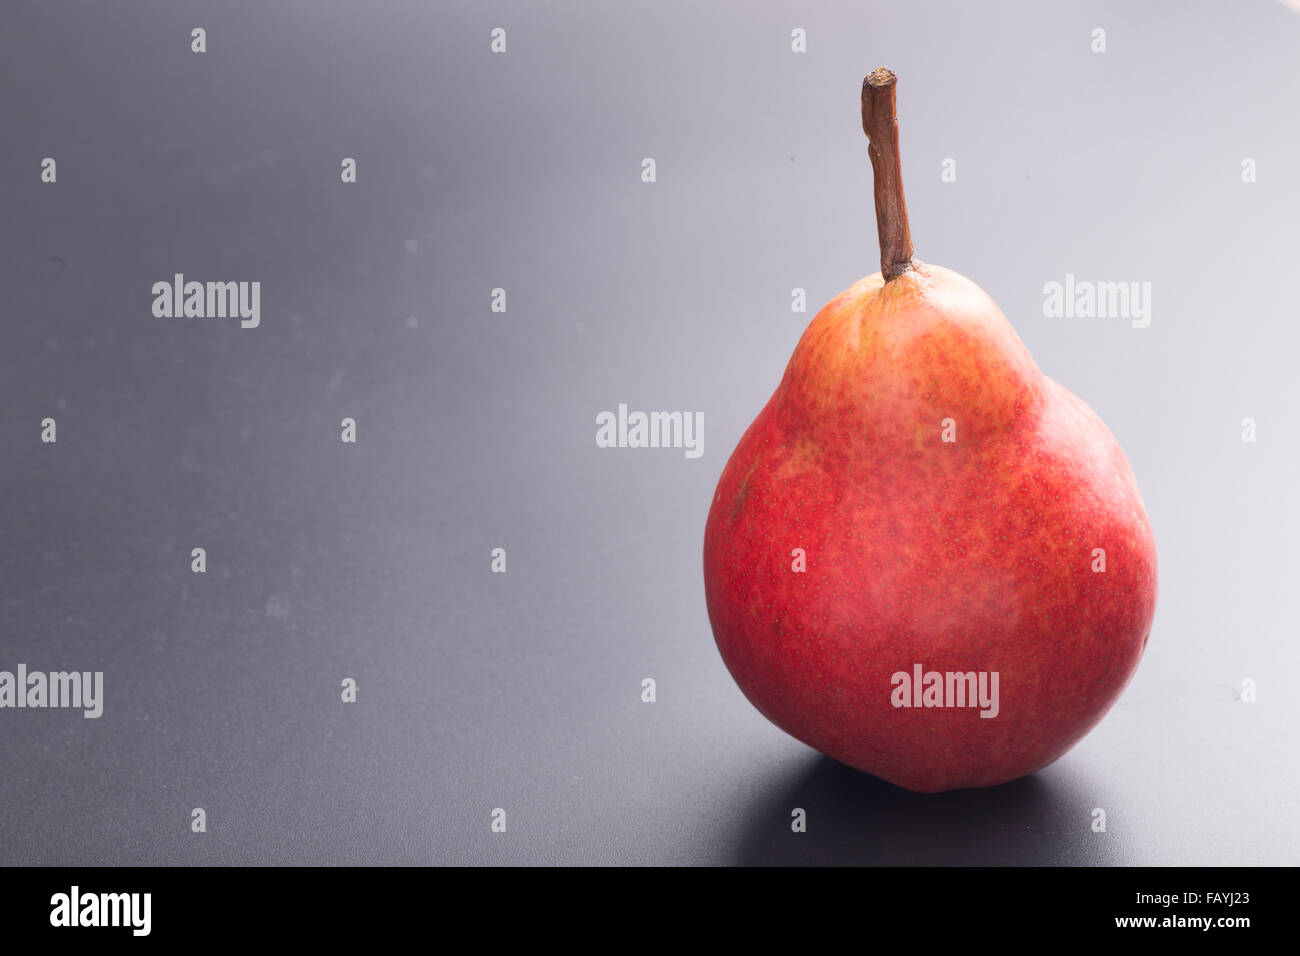 Williams pear isolated on black - Stock Image